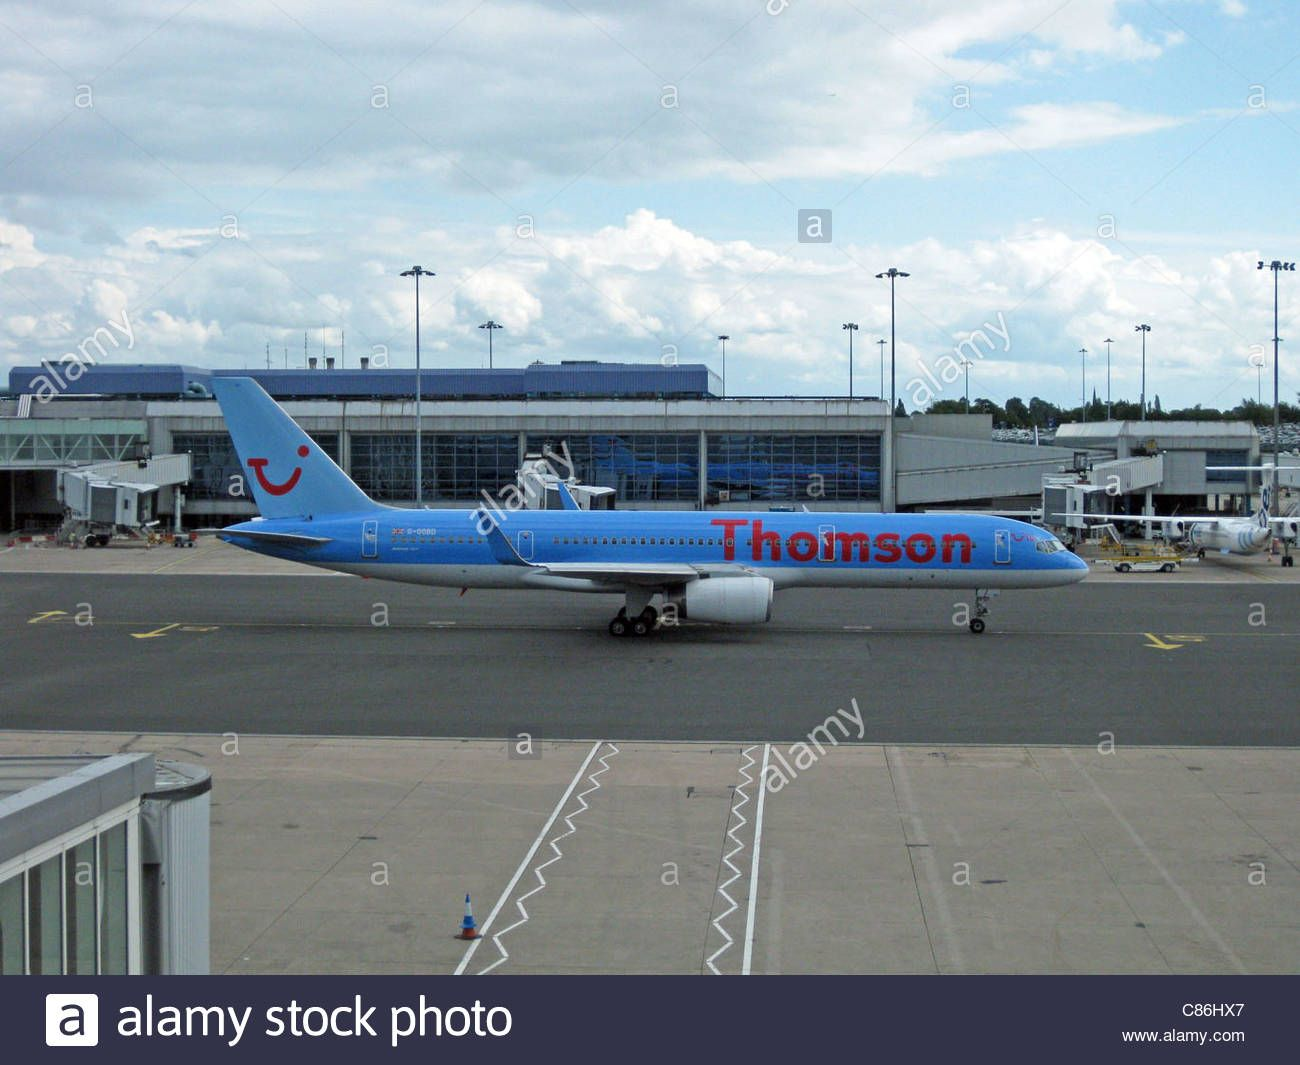 Stock Photo Thomson Airways Boeing 757 200 With Blended Winglets Registration Number G Oobd Birmingham International Ai Thomson Airways Boeing Stock Photos